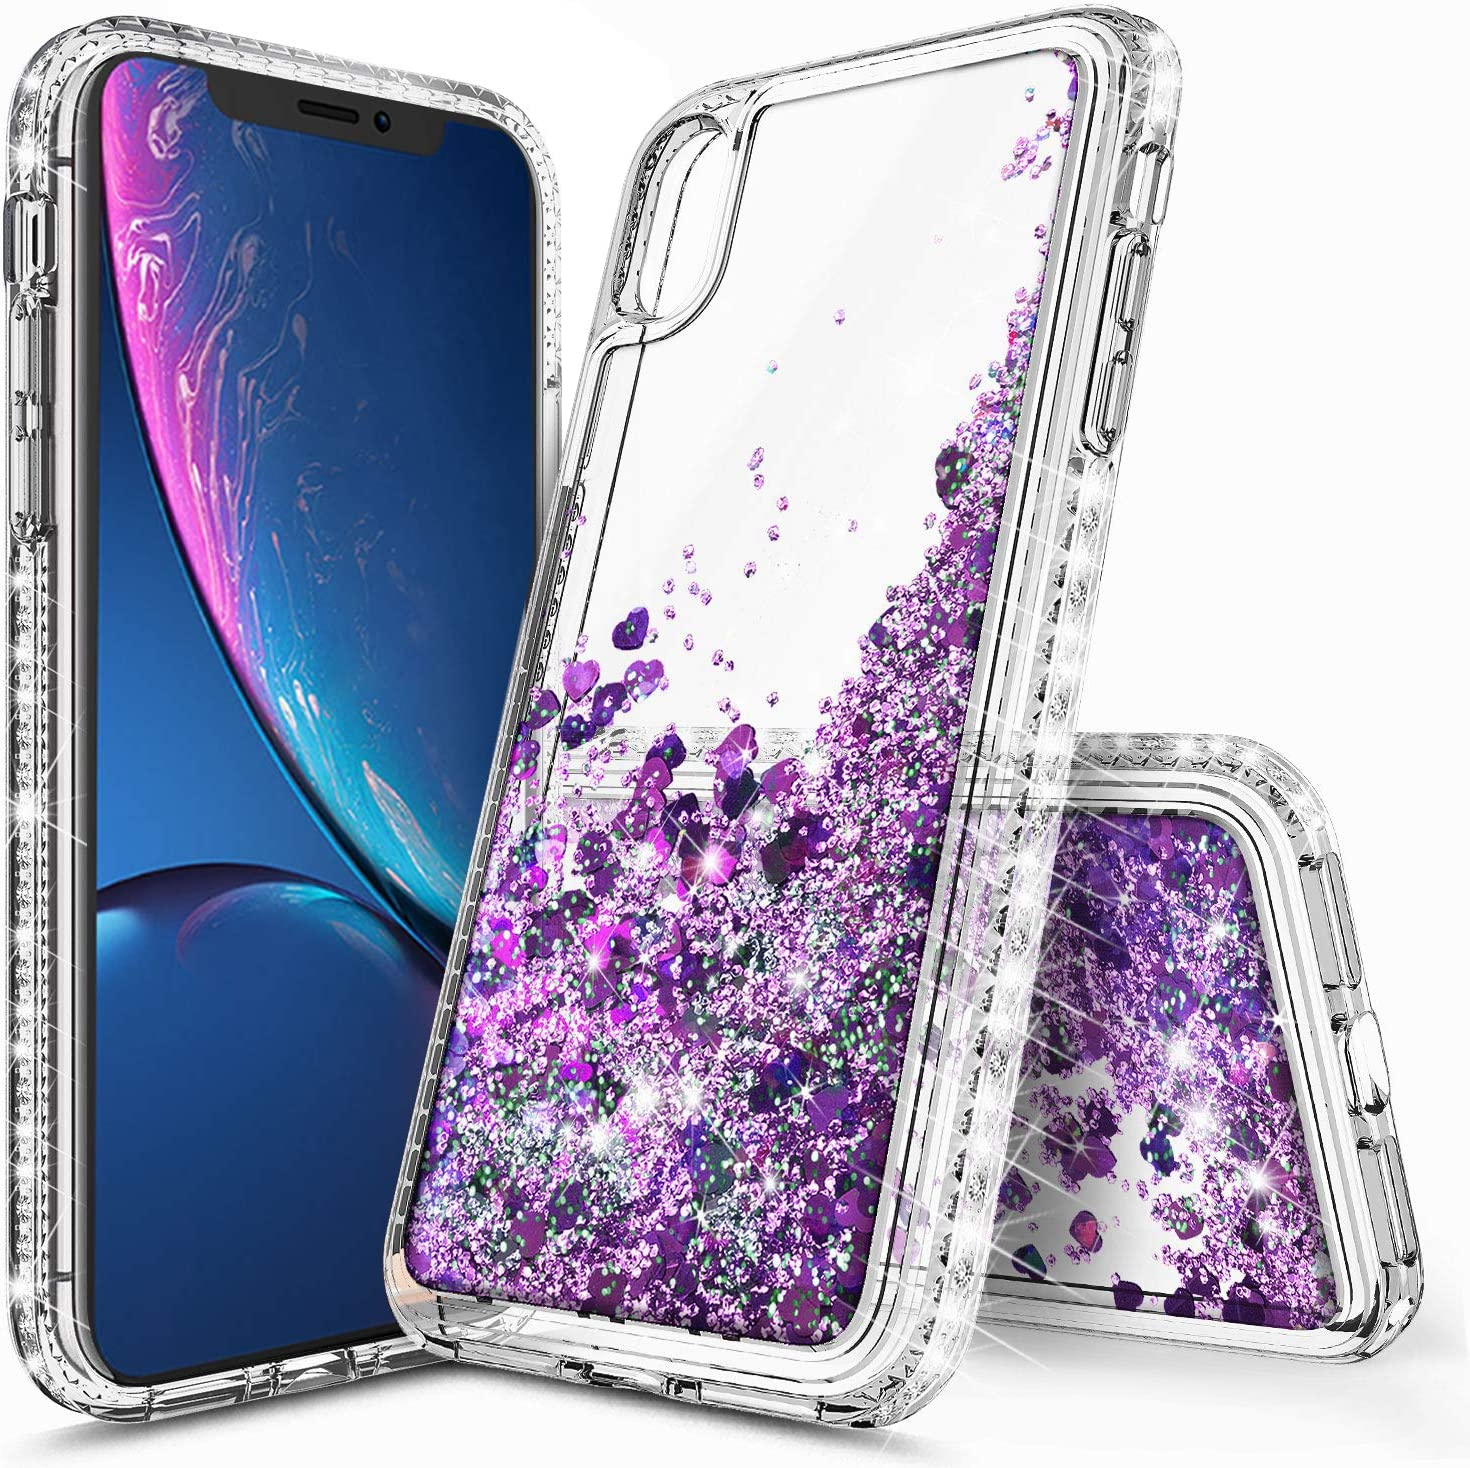 lovemecase Case for iPhone XR Case, iPhone XR Case for Girls Woman,Glitter Liquid Quicksand Bling Sparkle Flowing Sparkle Shiny Diamond Girls Protective Phone Case(Clear Purple)